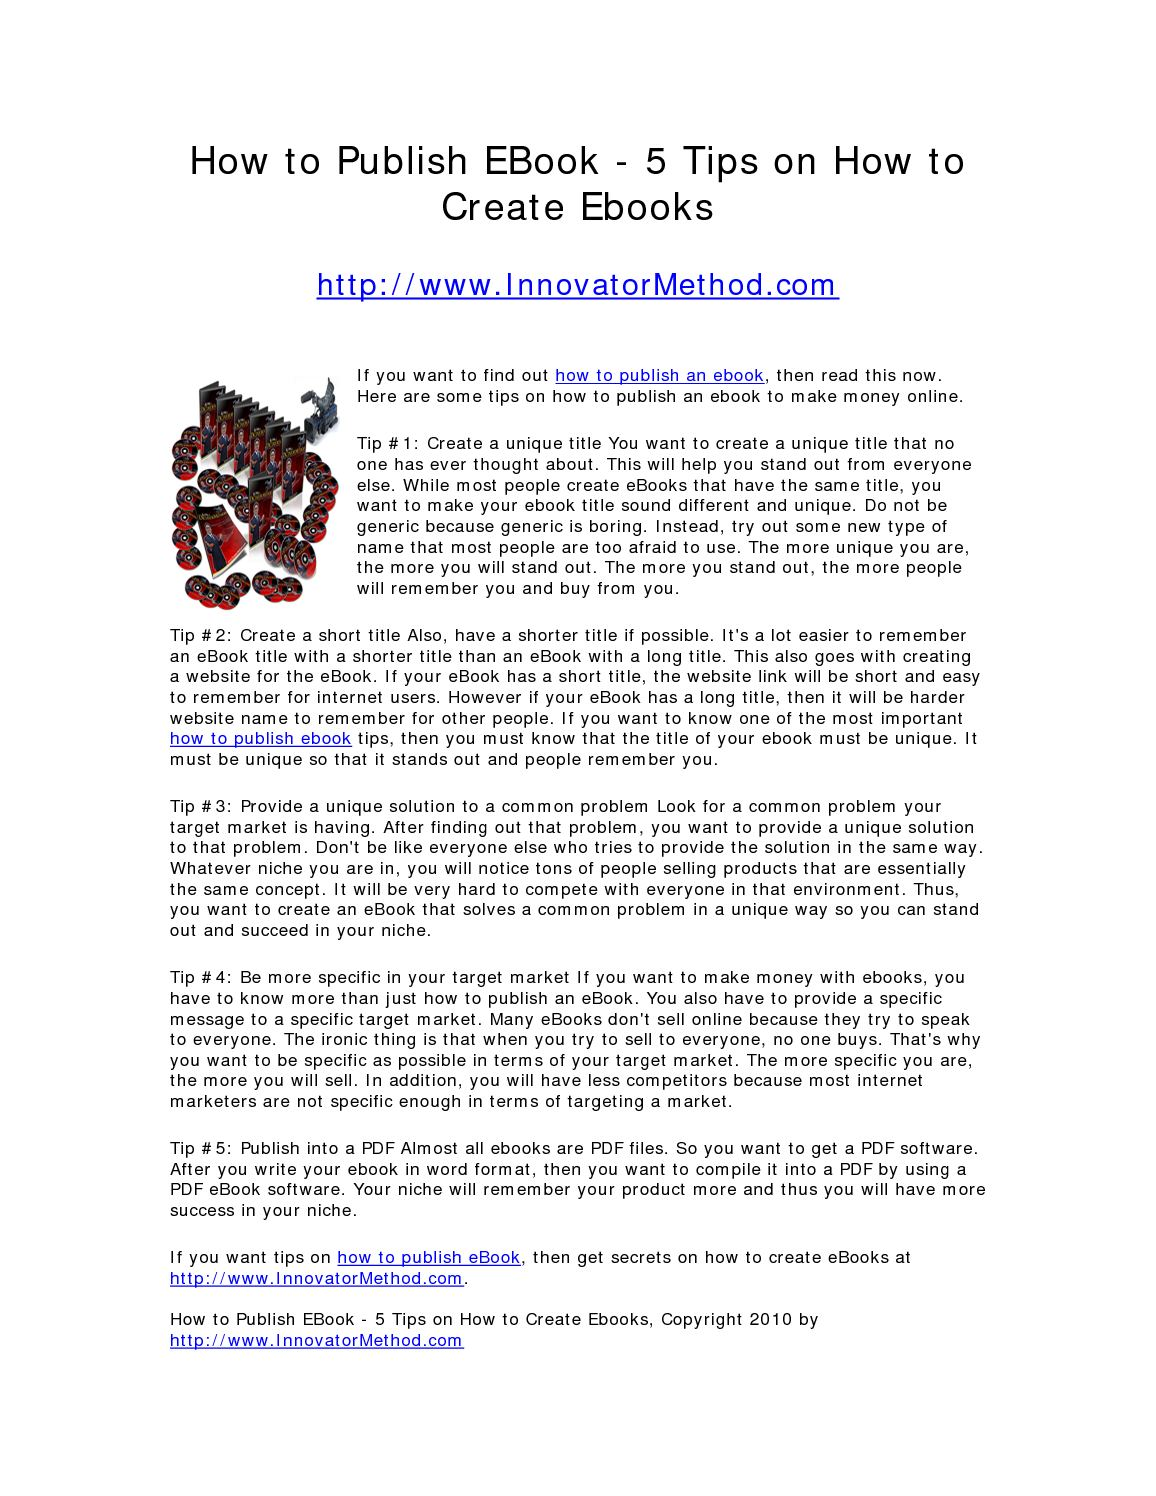 Calaméo - How to Publish EBook - 5 Tips on How to Create Ebooks